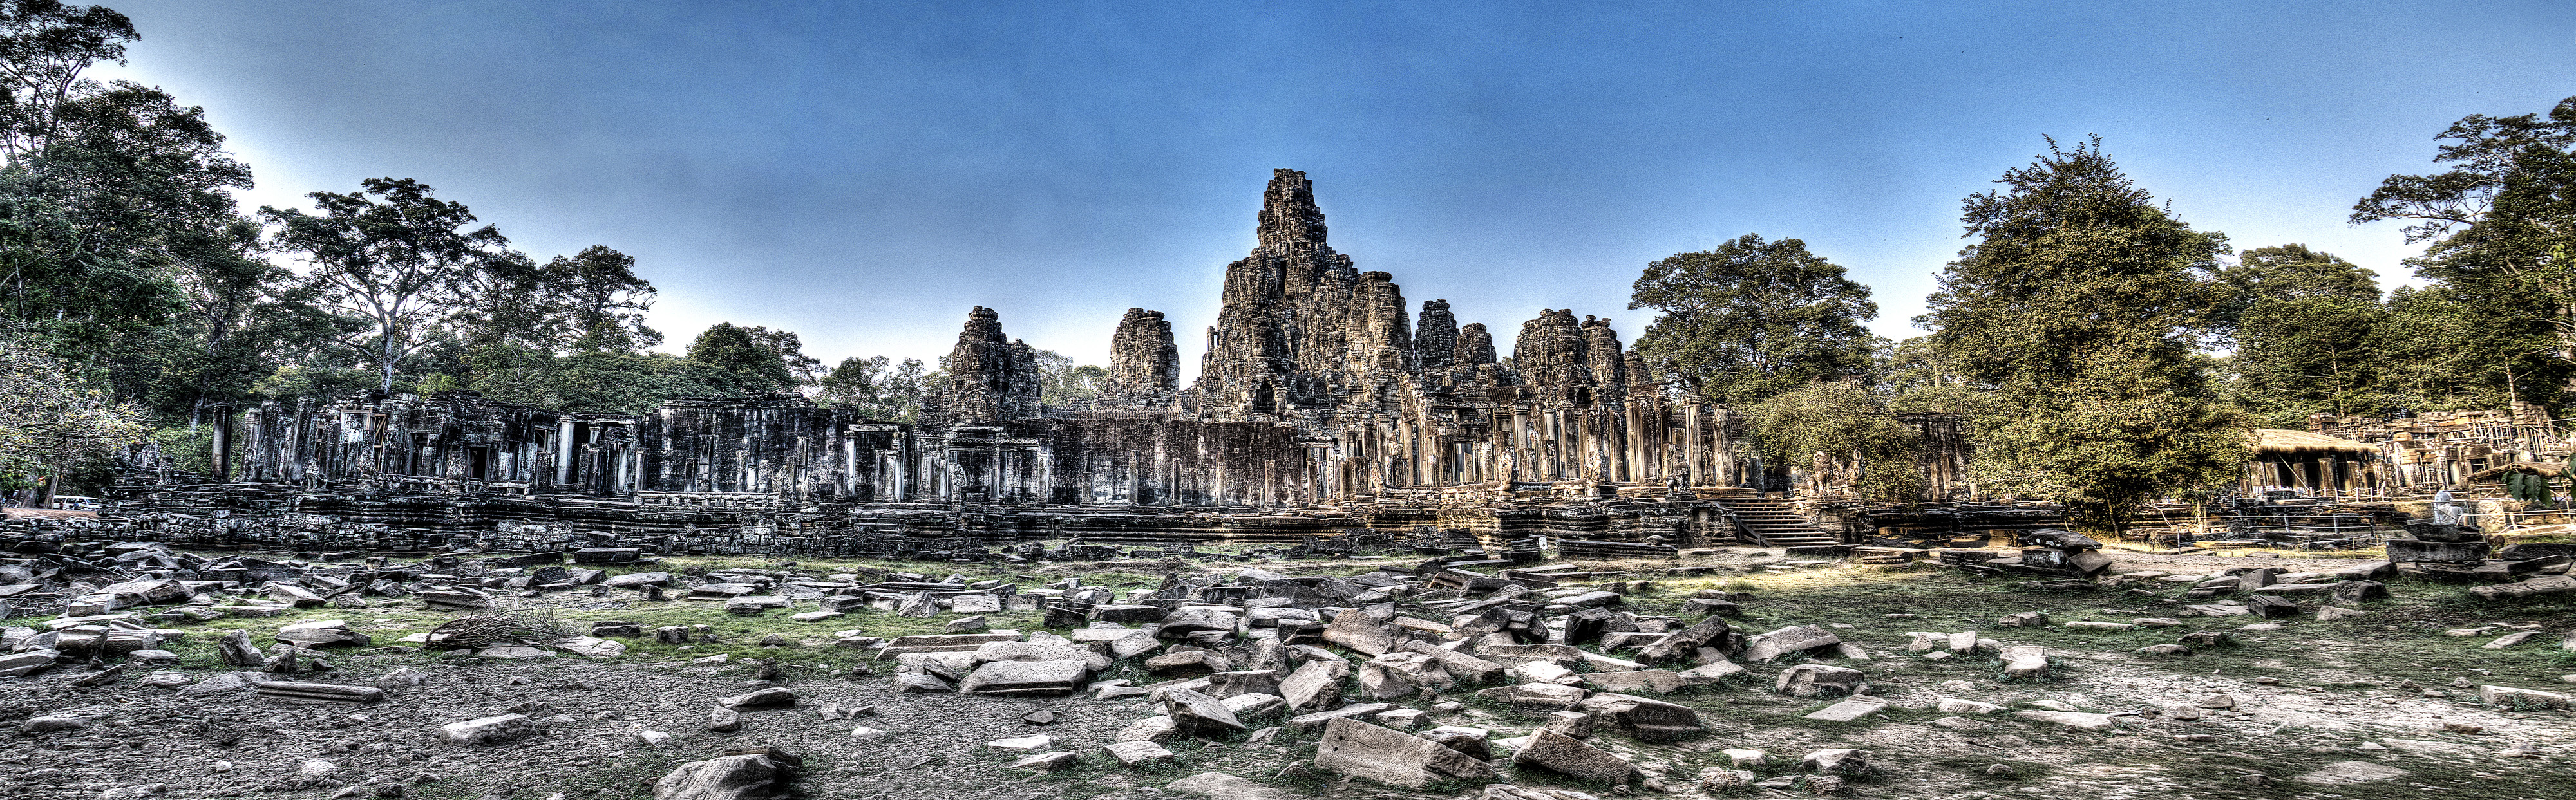 The Khmer Angorian tempel of Bayon; known as the Mona Lisa of South East Asia.